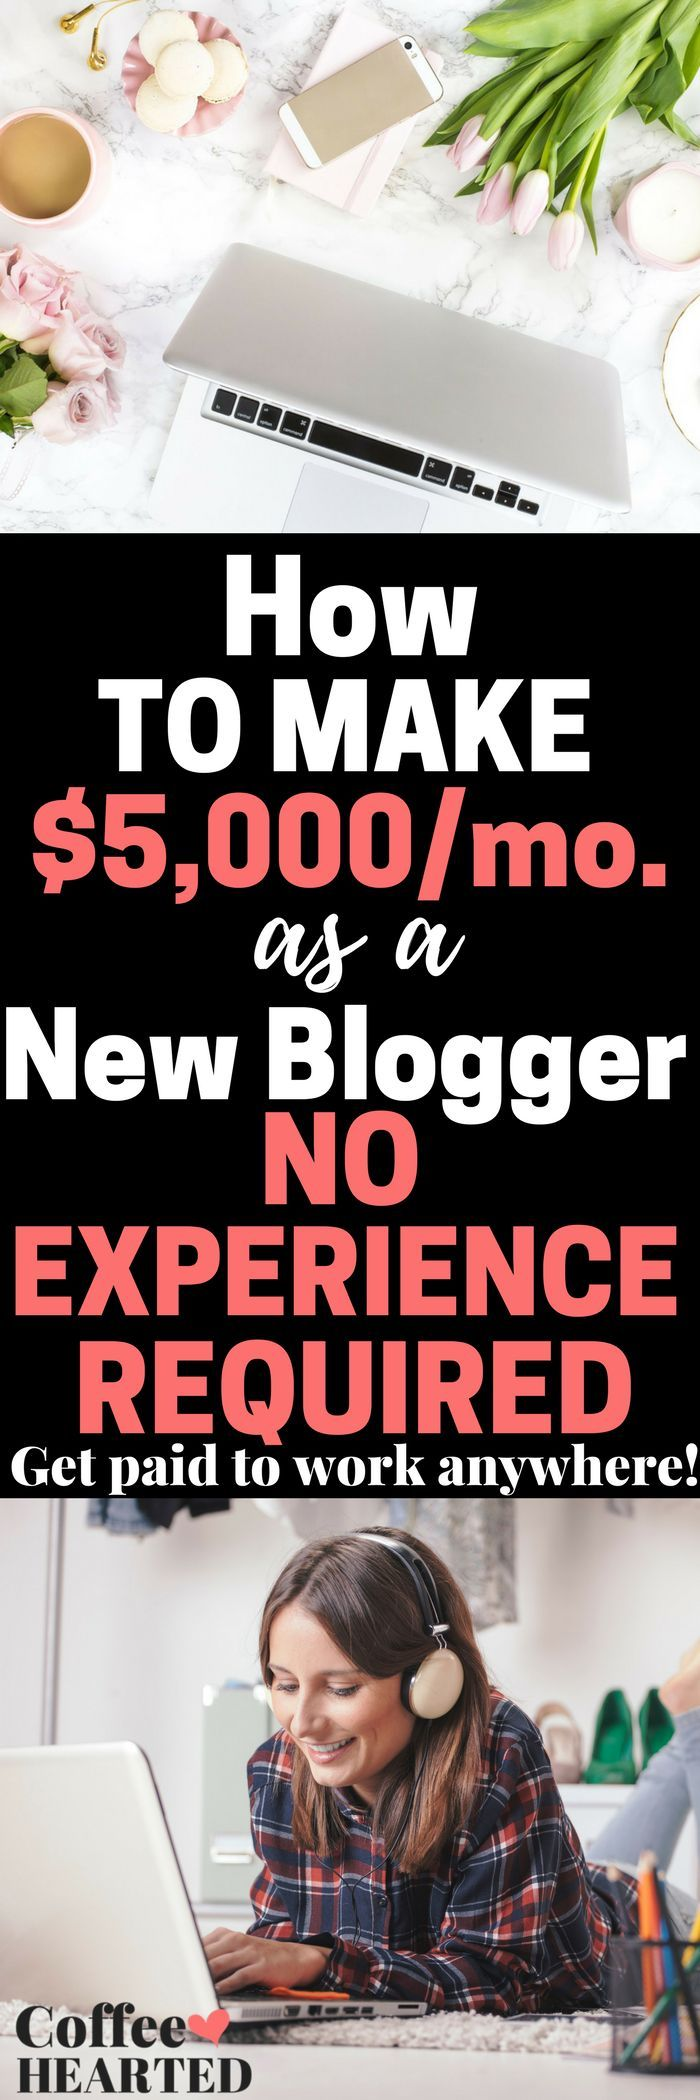 Wow, this newbie blogger (less than 1 yr) is earning $5K-$7K per month from her blog. I took her advice and have earned over 100x more from Amazon! Read on to learn about her strategy for earning on her new blog #ad